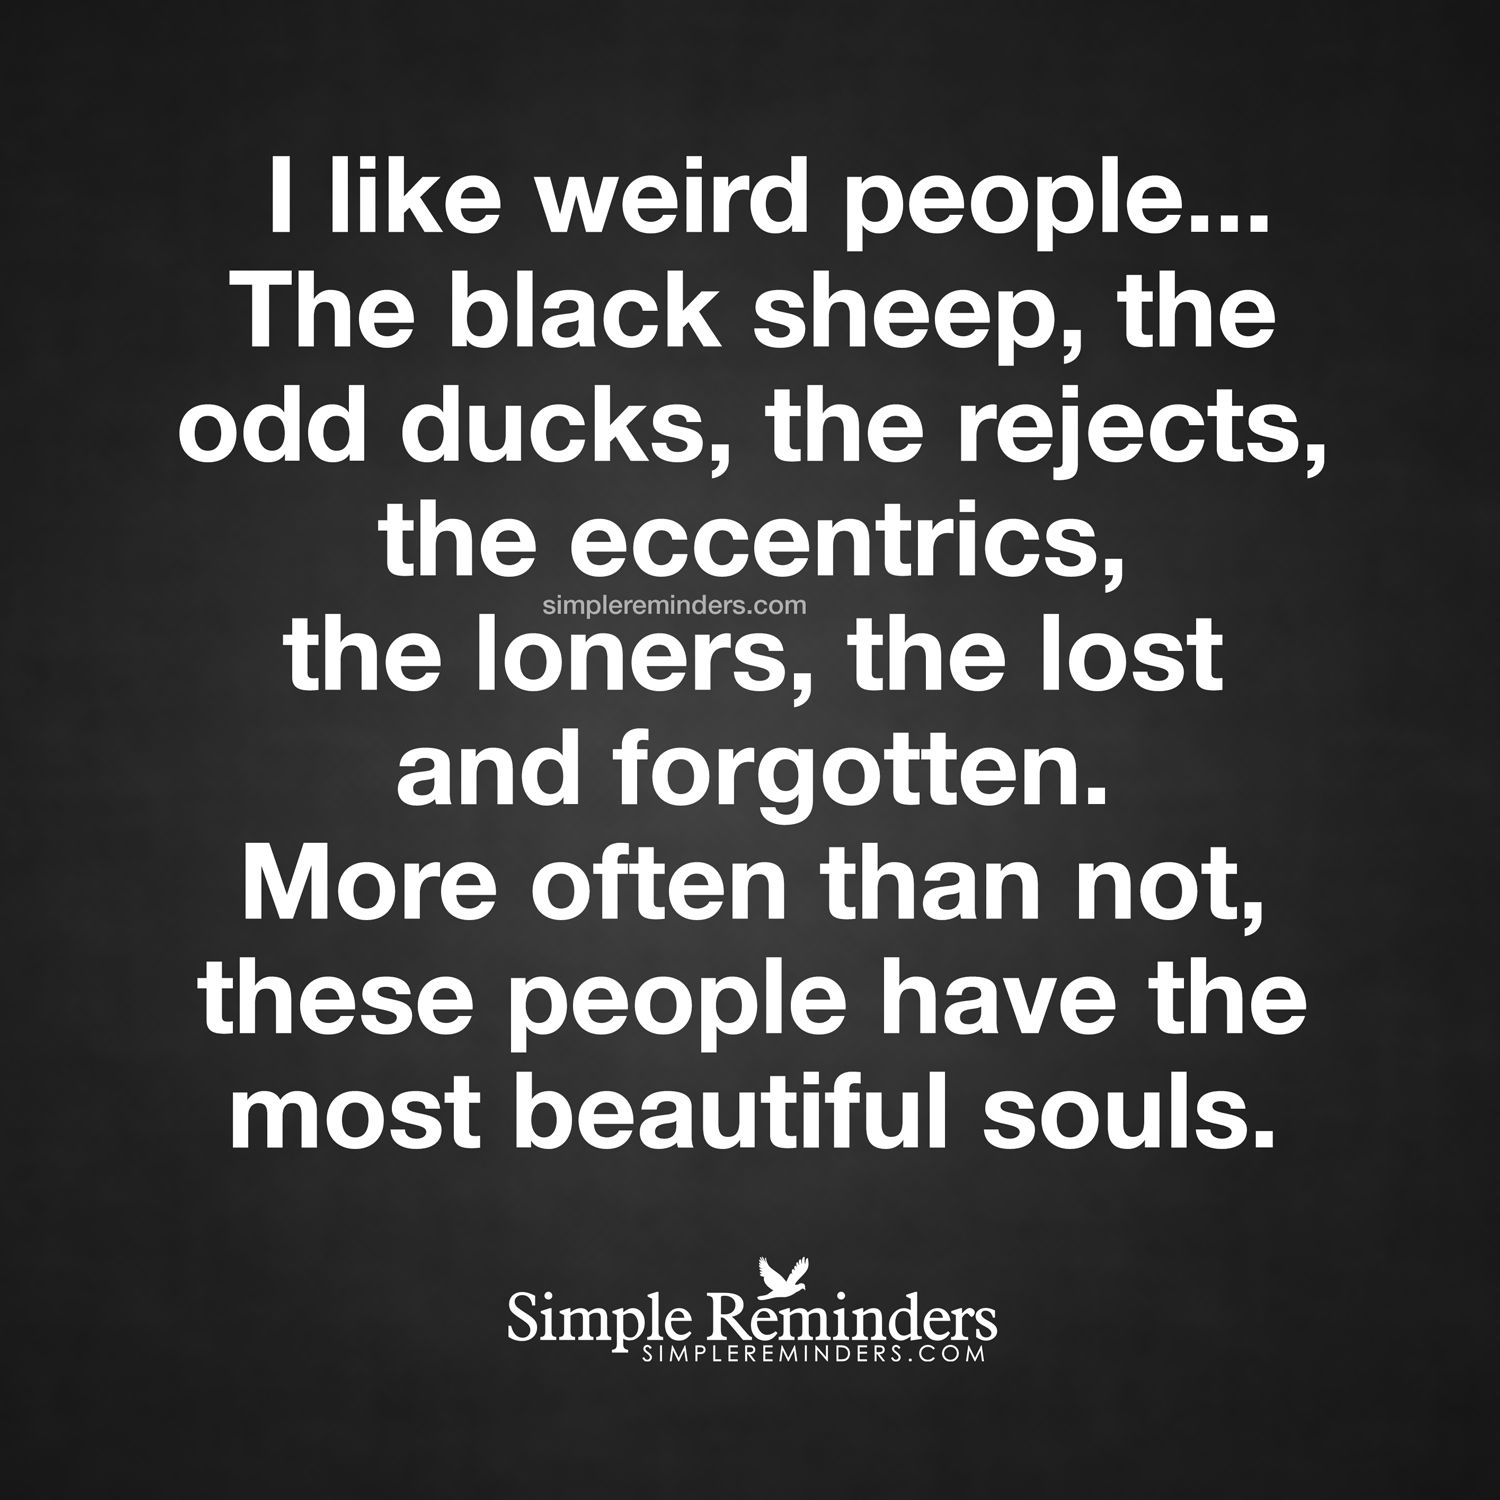 People Are Strange Quotes: The Most Beautiful Souls I Like Weird People... The Black